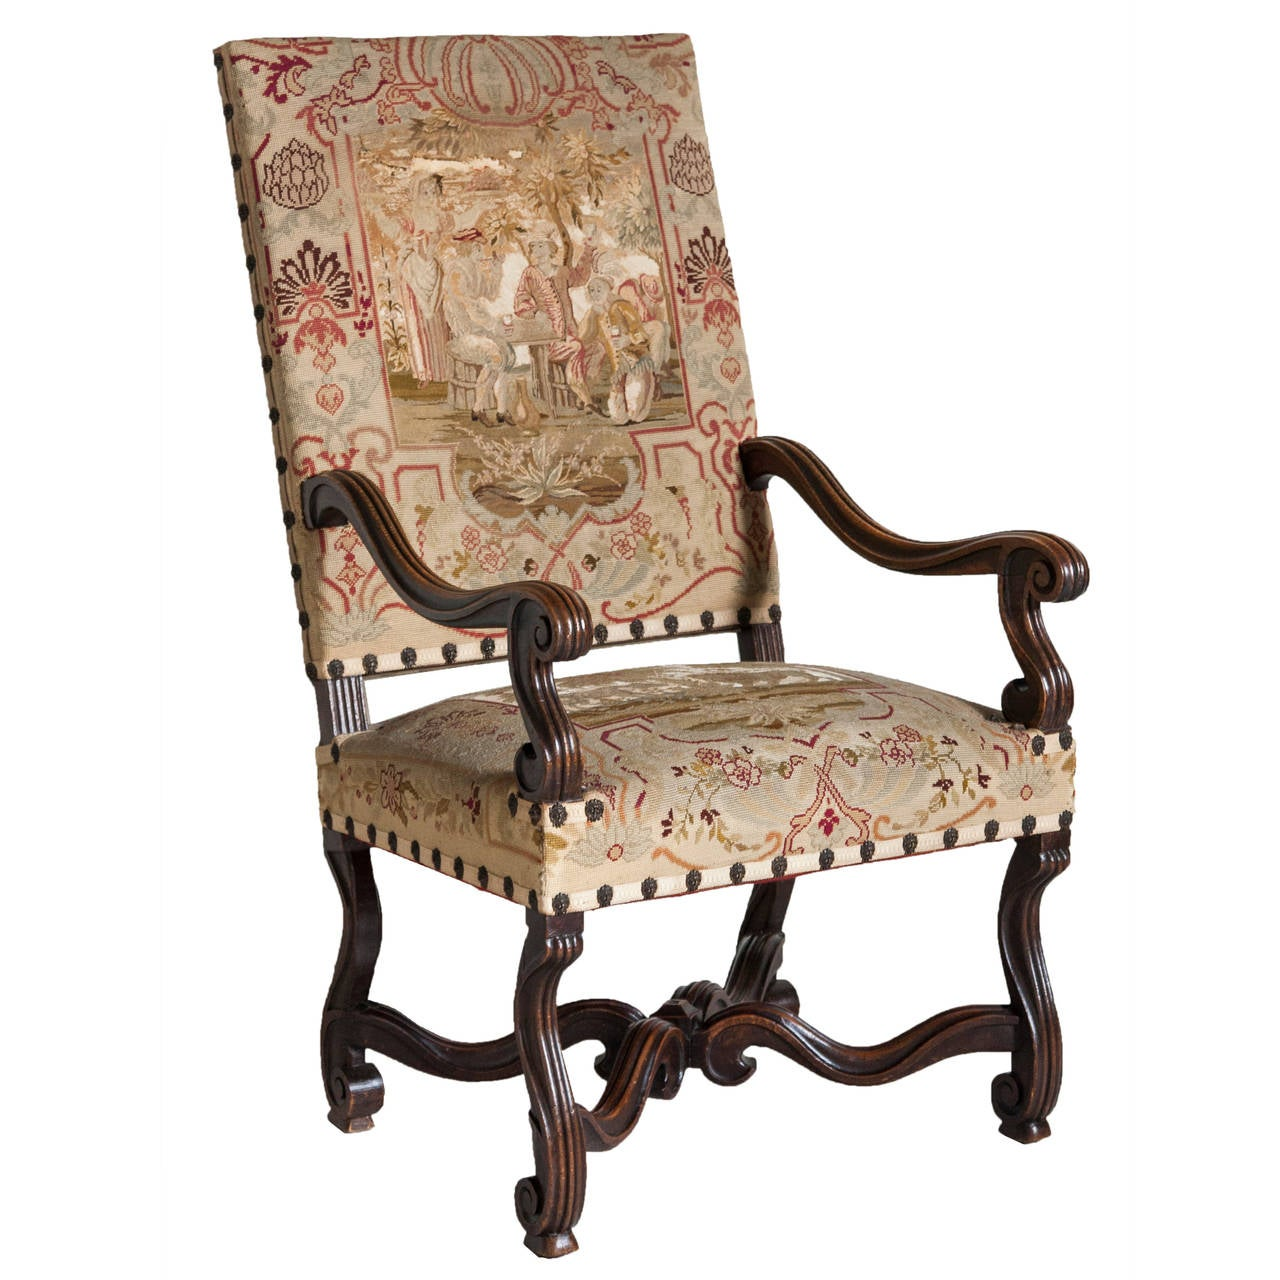 19th Century French Louis Xiv Style Walnut Armchair With Original Needlepoint For